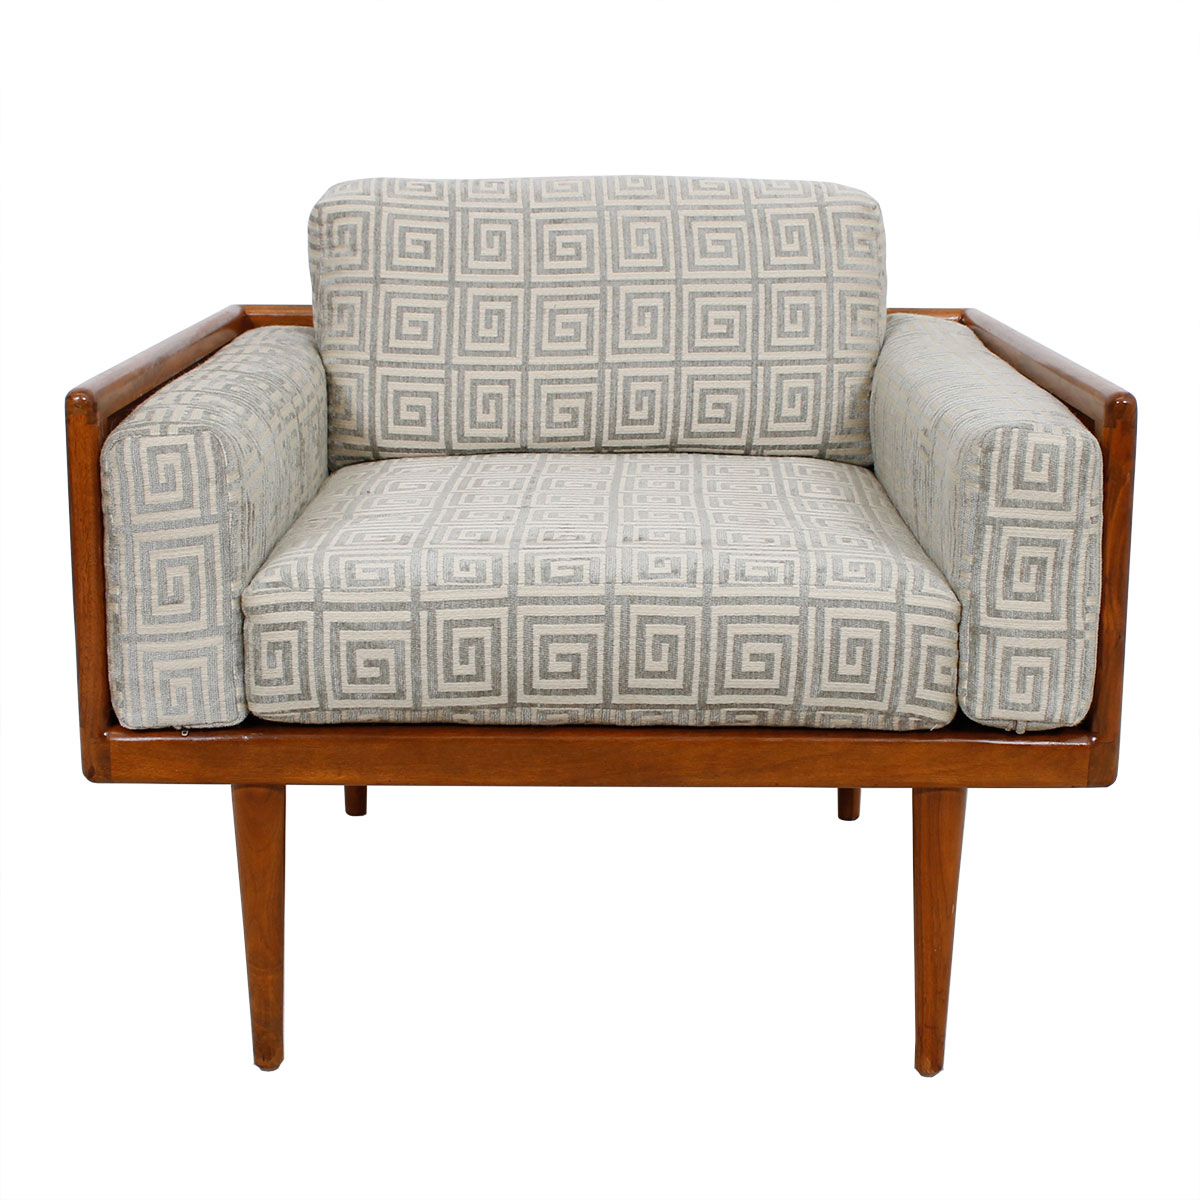 Luxurious Mel Smilow Walnut Lounge Chair w/ Greek Fret Pattern Upholstery